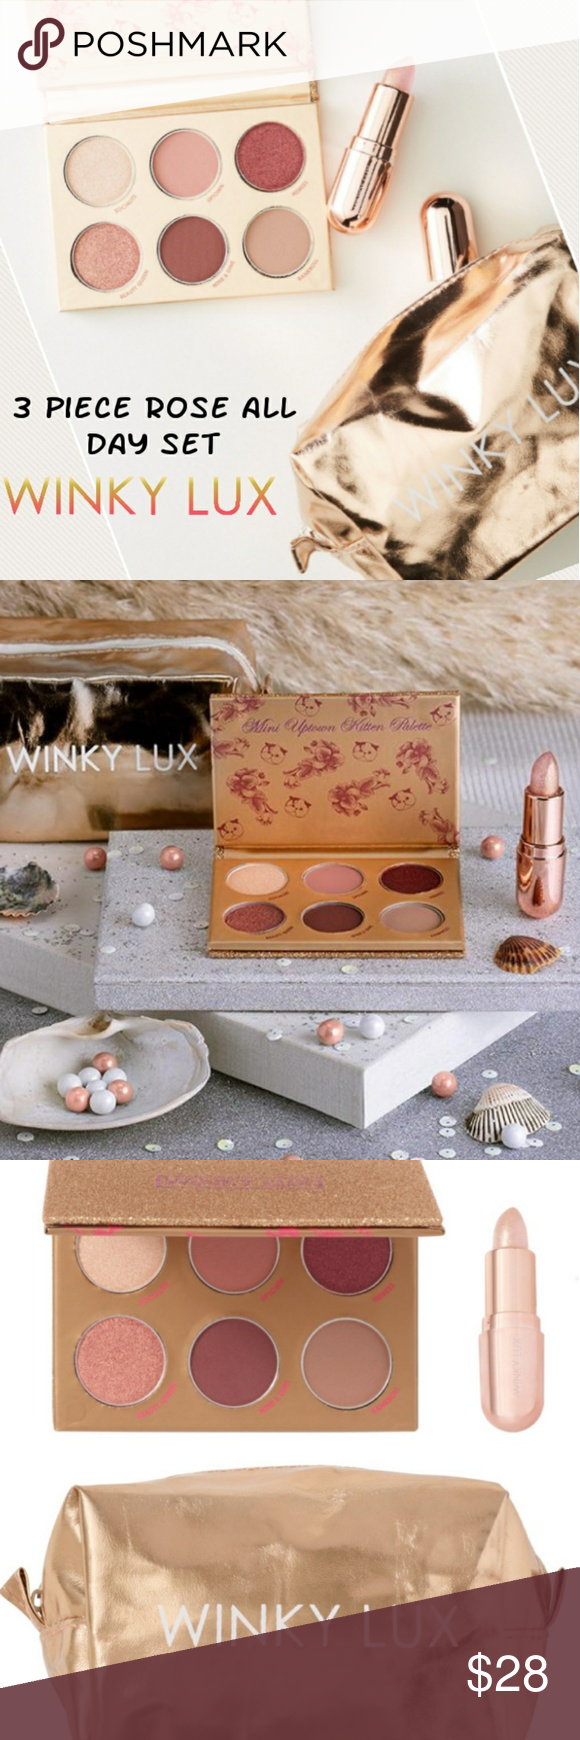 3 Pc Winky Lux Rose All Day Kit Winky Lux Things To Sell Shade Roses